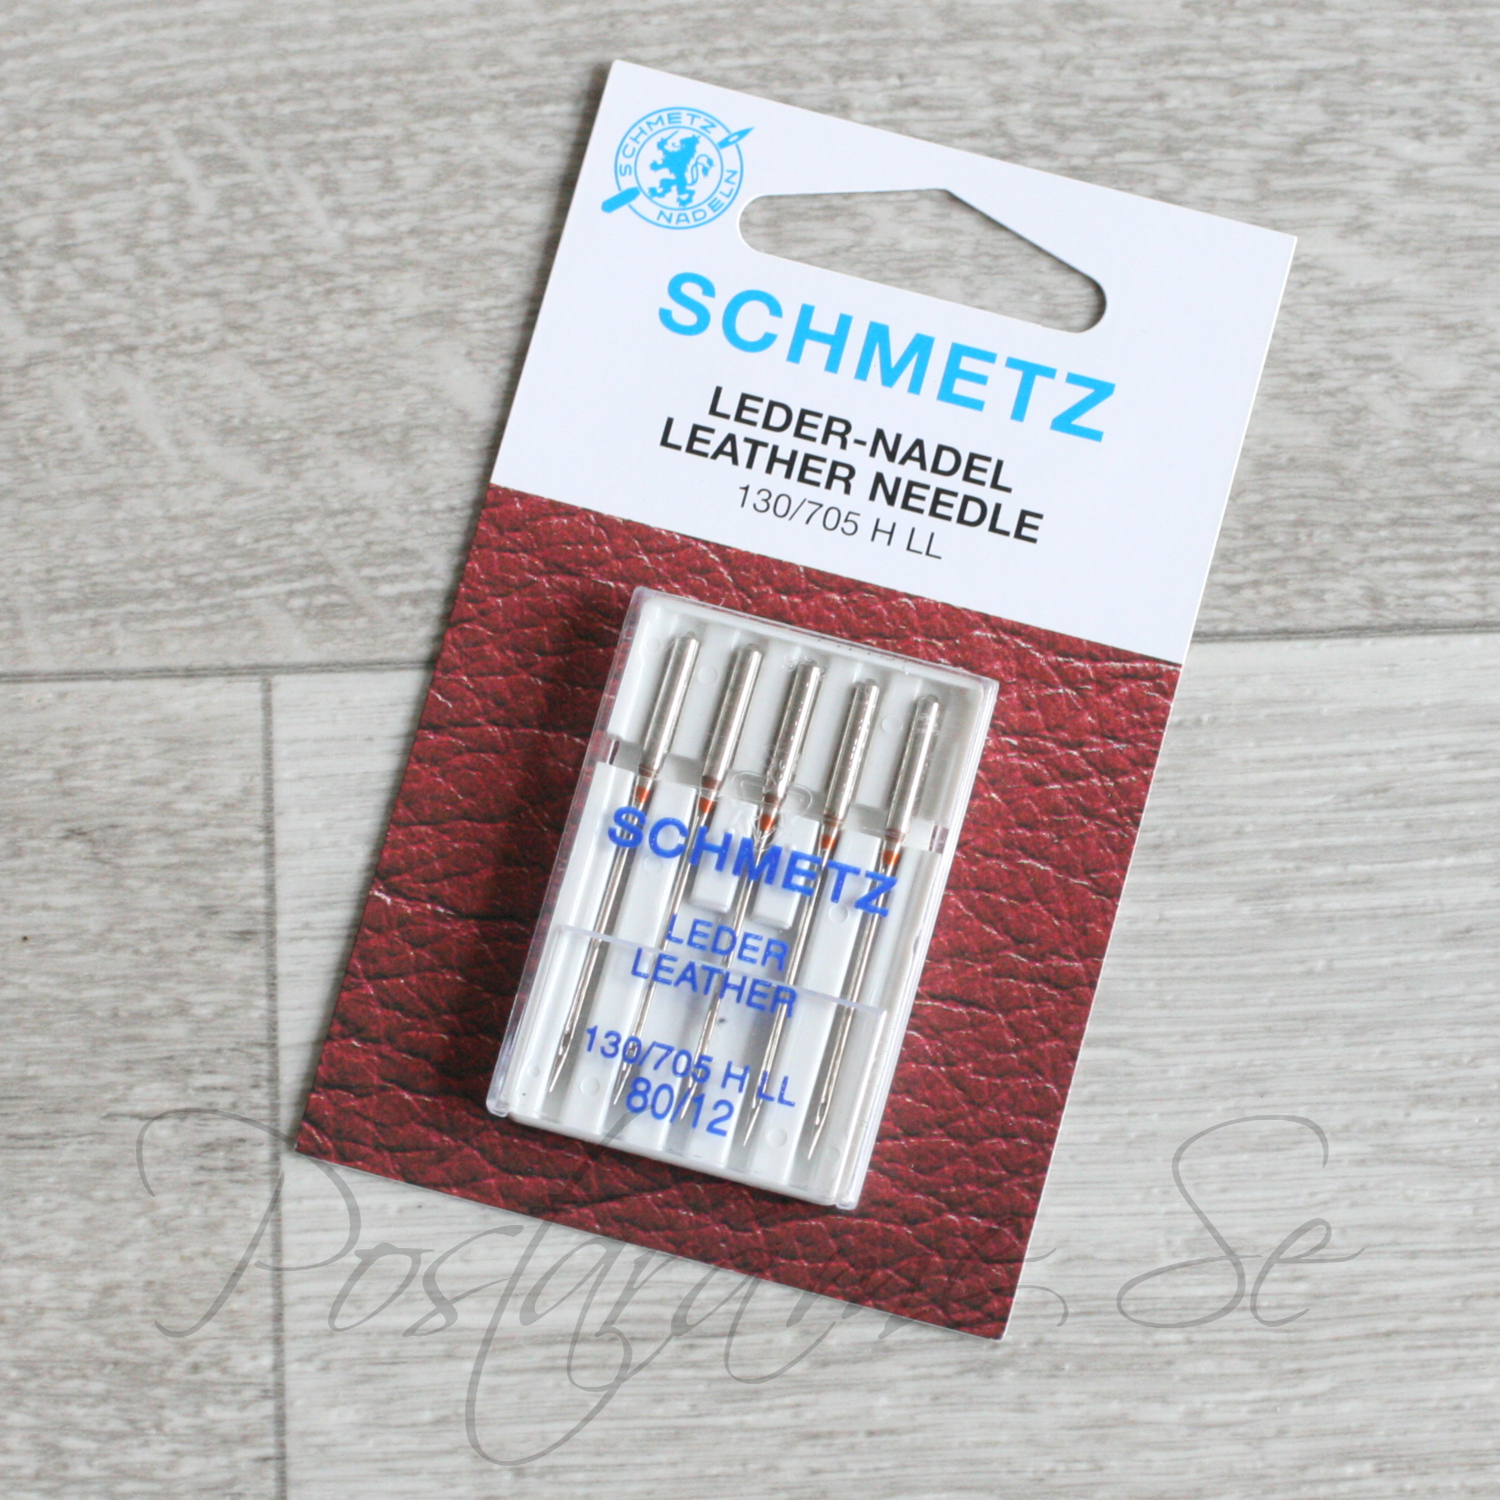 Schmetz leather 80